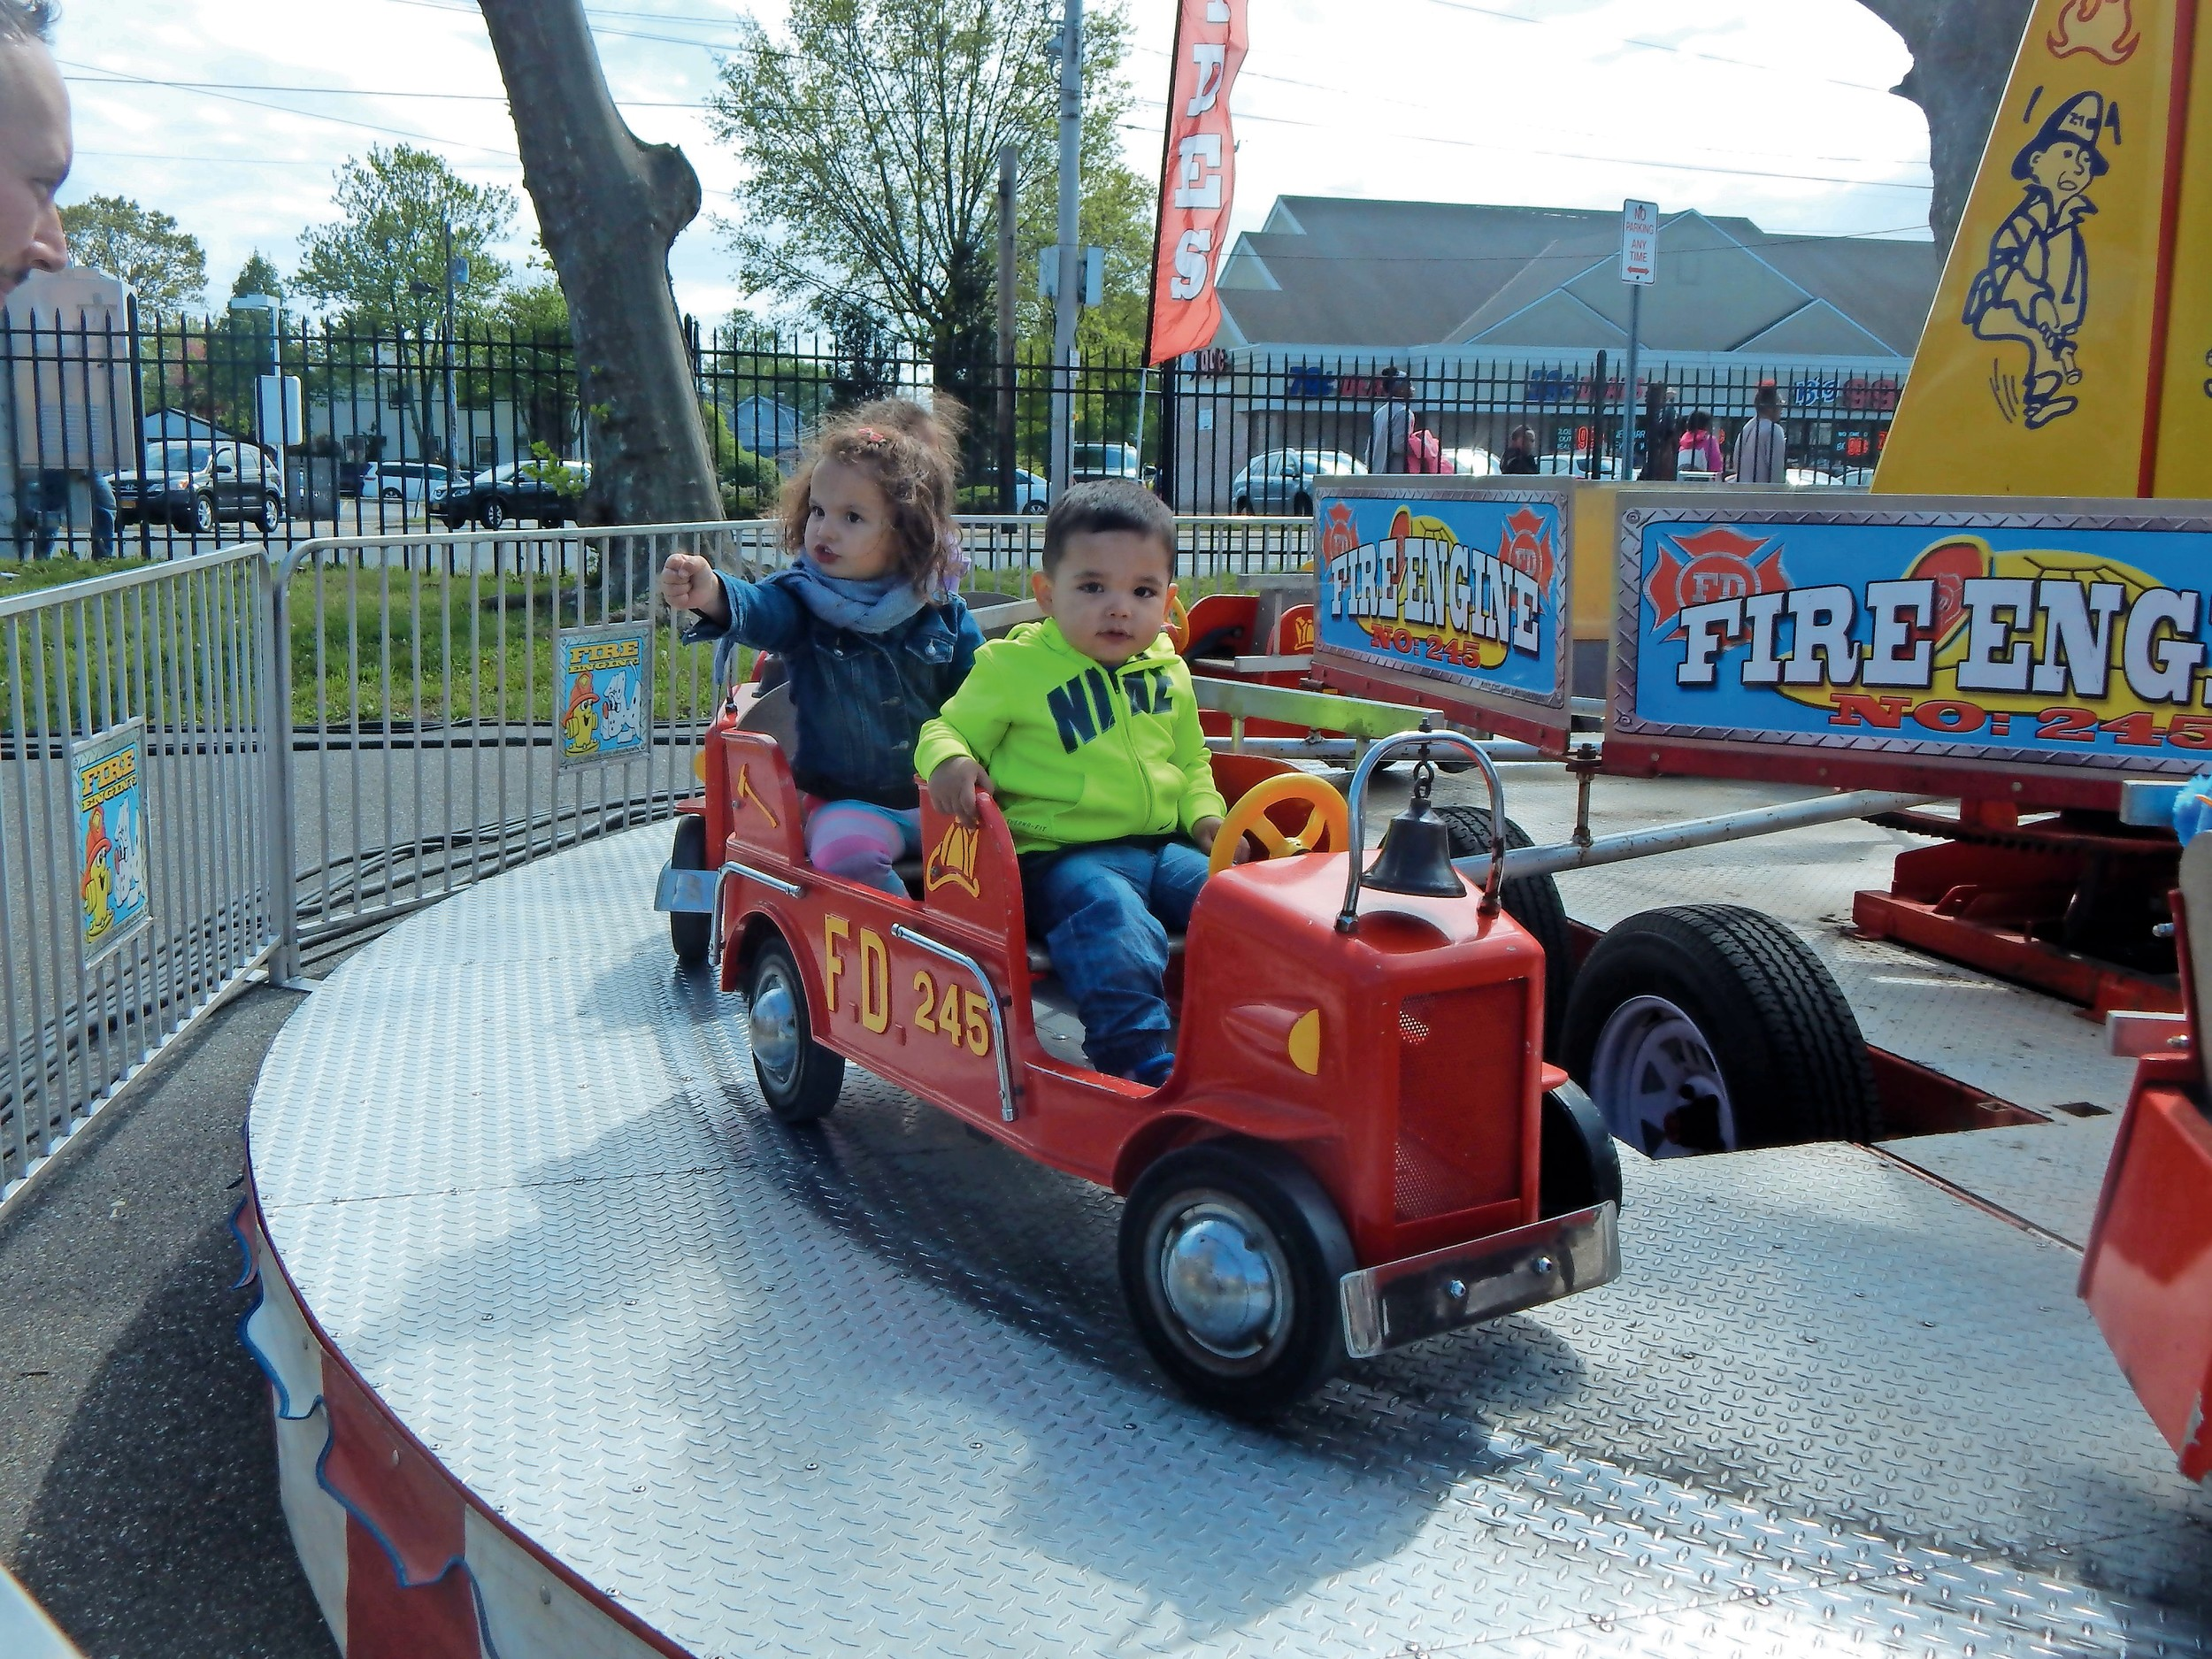 Kensington and Ashton Cambeiro had a great time on the fire engine ride.